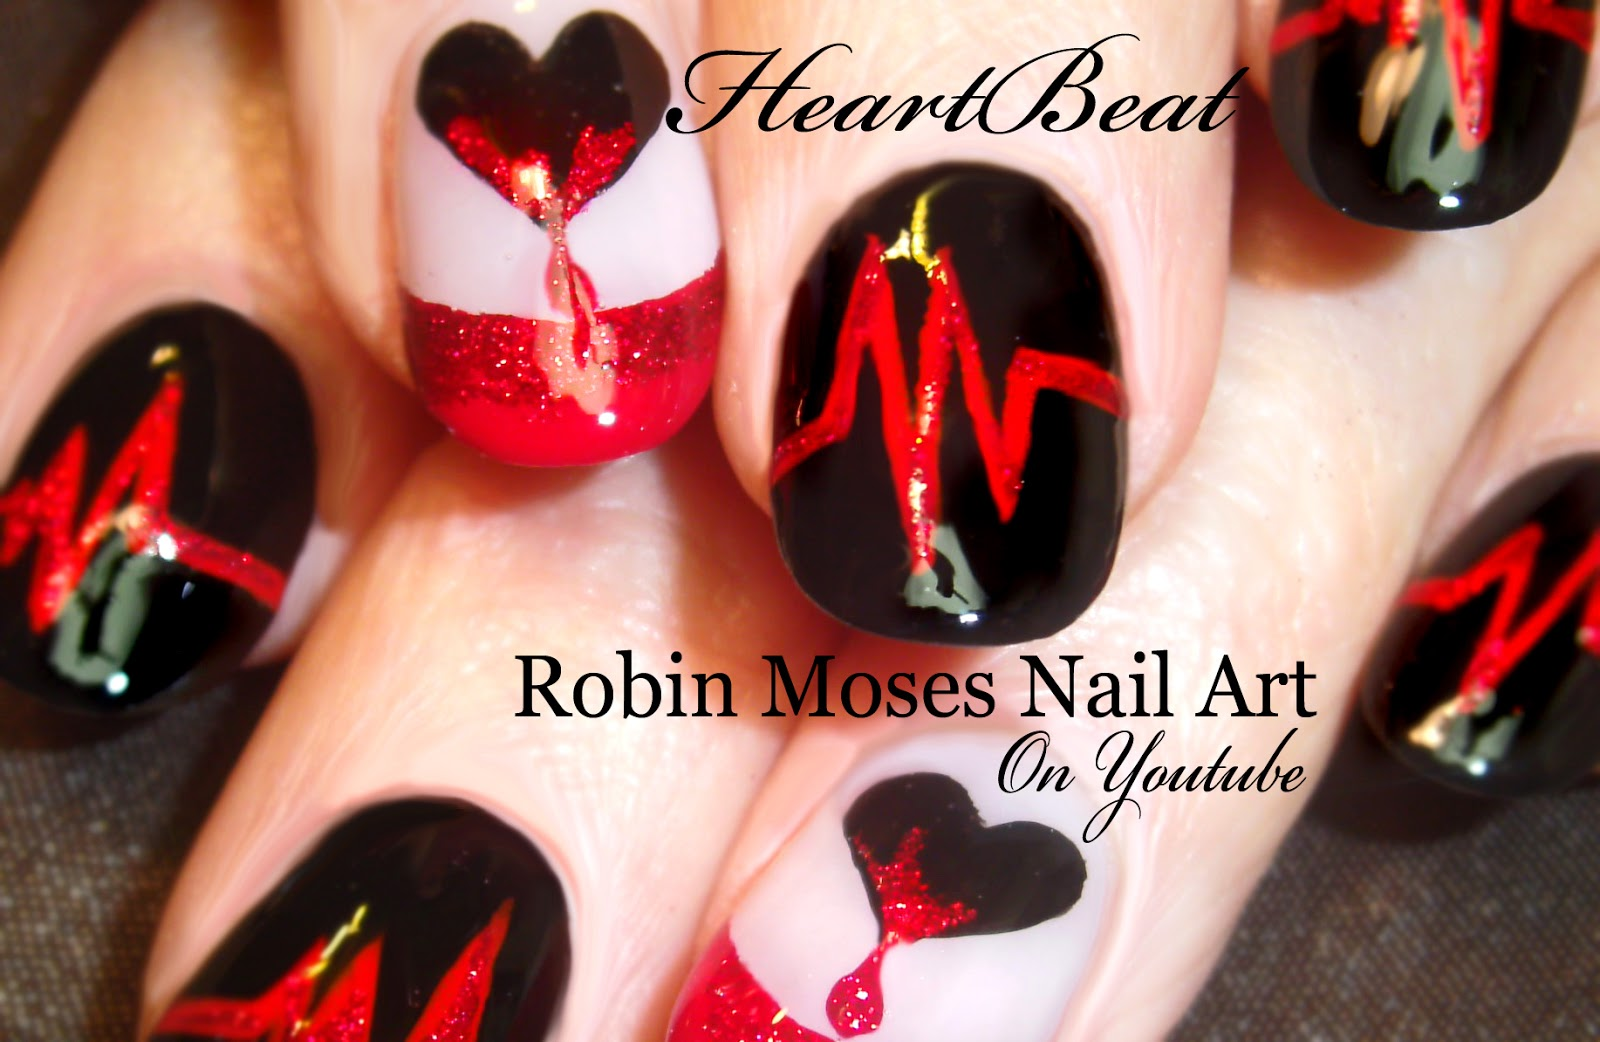 Nail art designs besides red nail art designs on top nail art images - Red And Black Nail Art Designs View Images